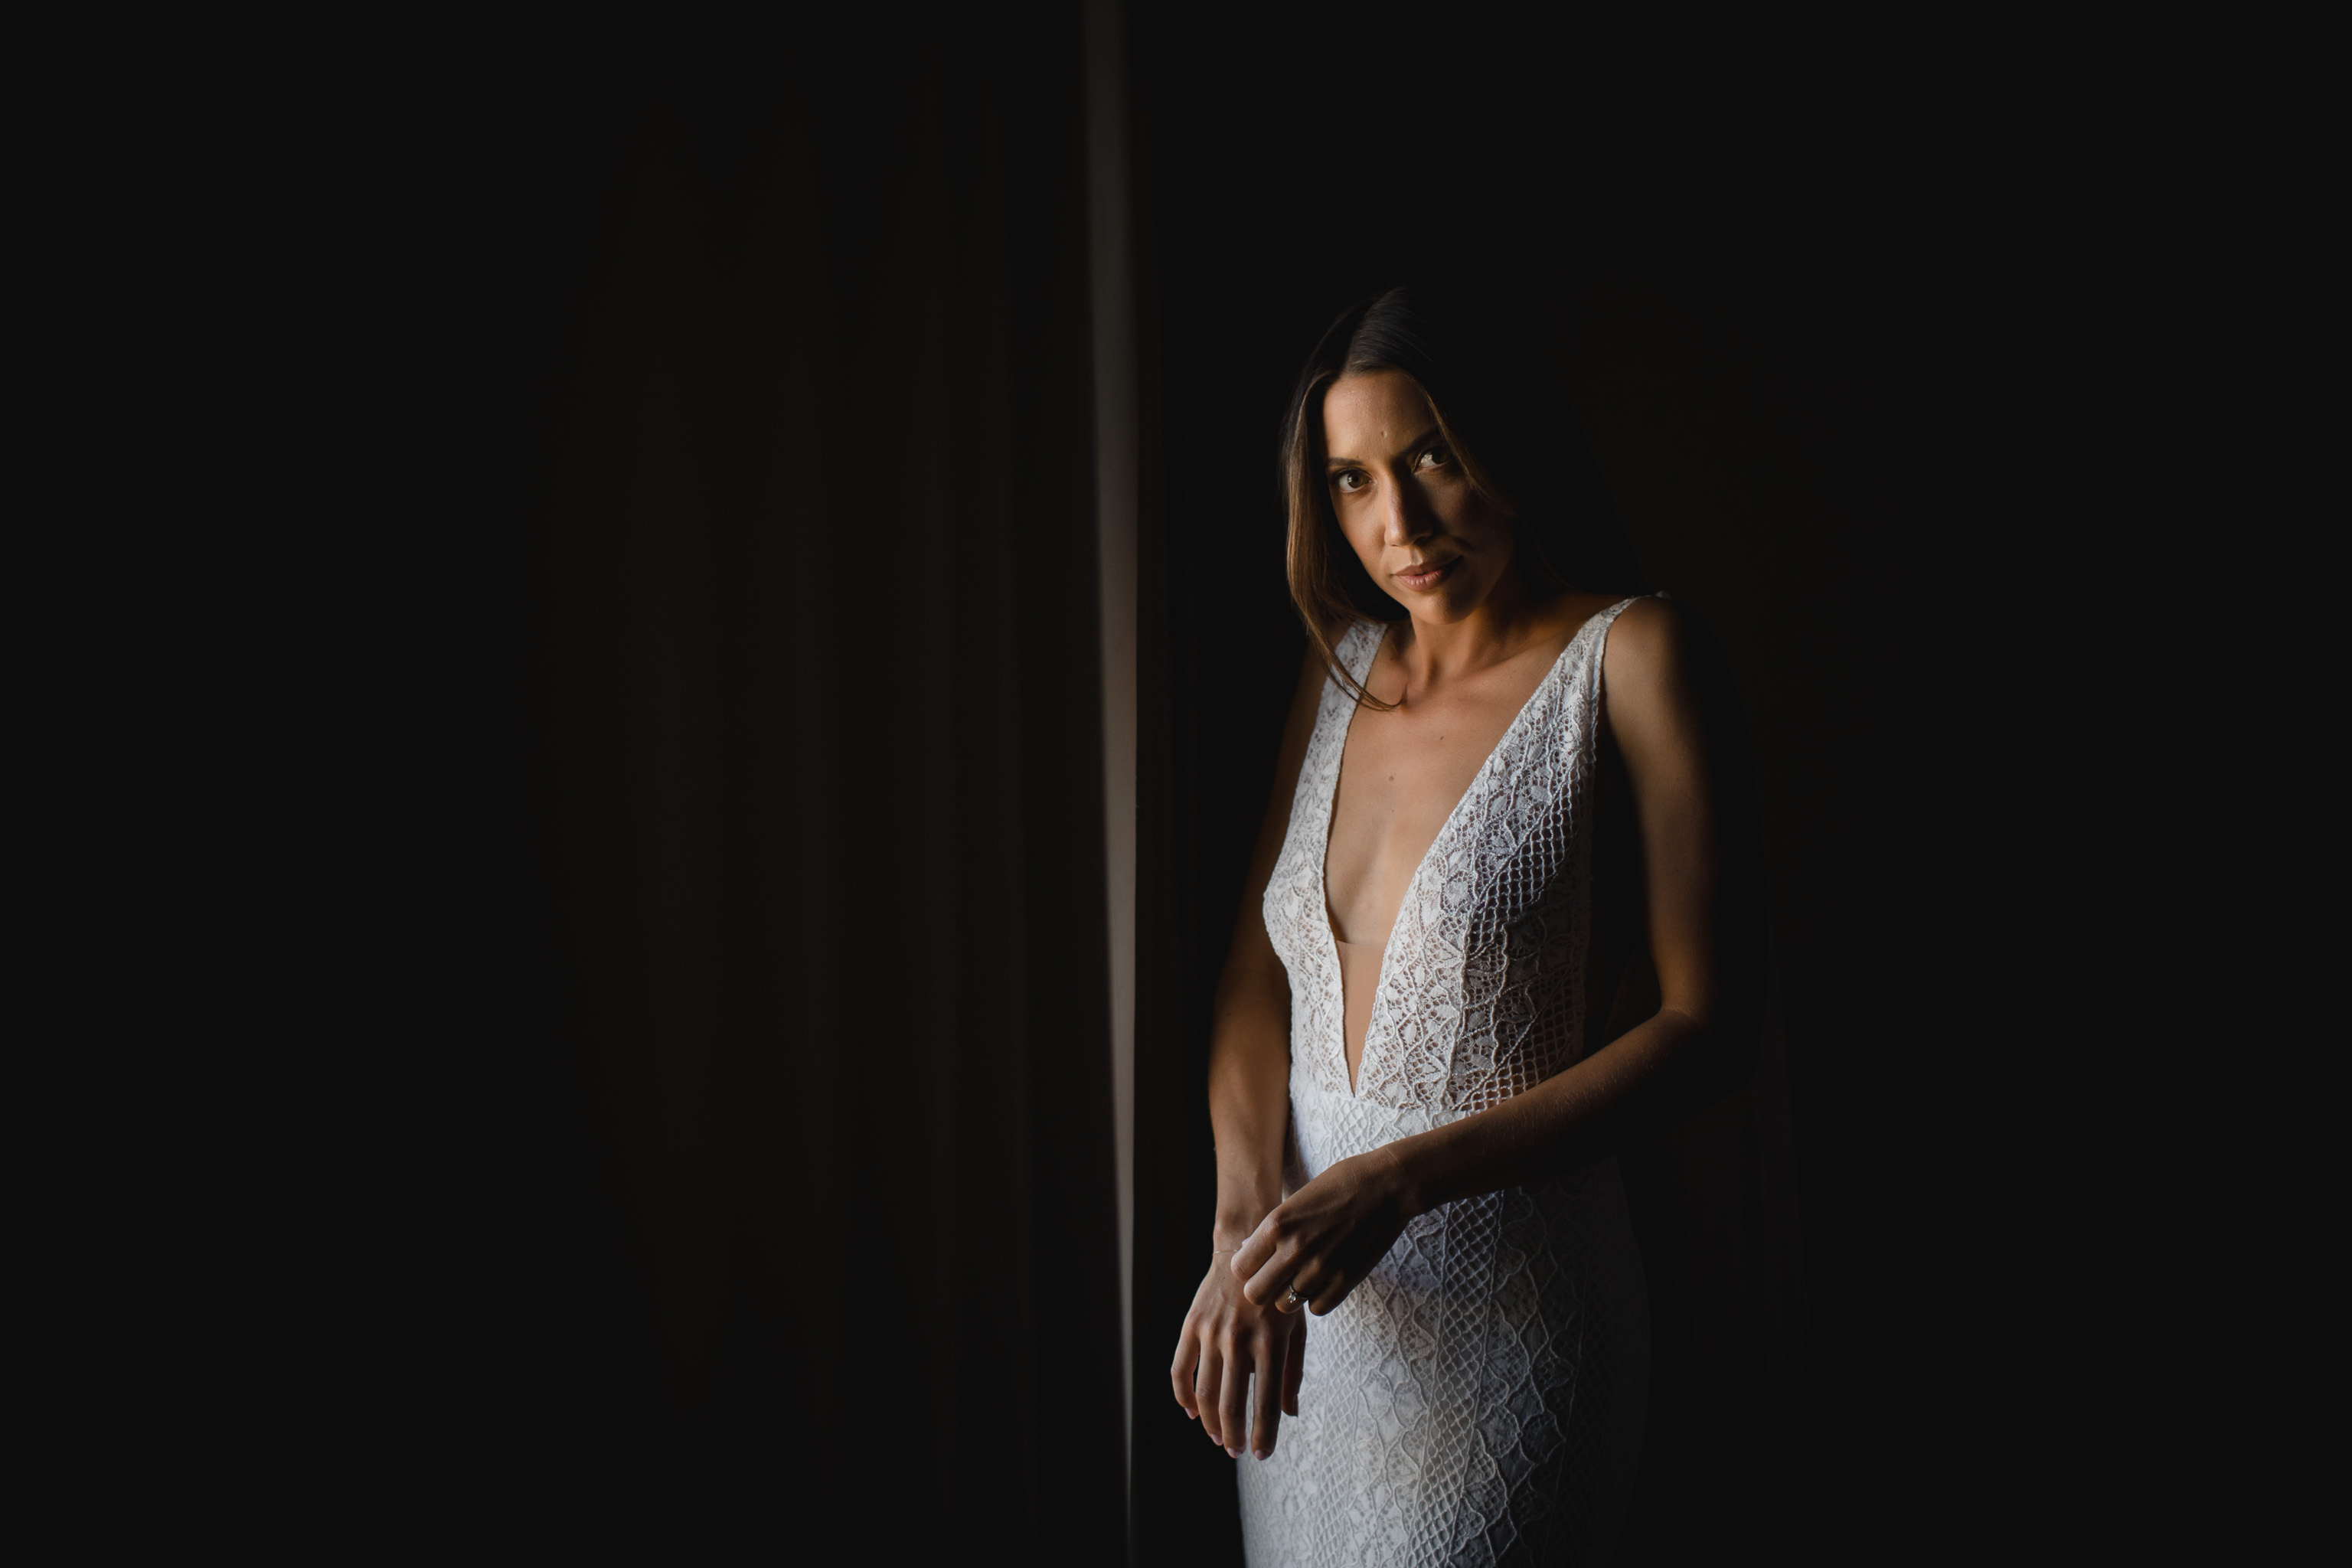 Portrait of bride standing in window light and staring straight at camera